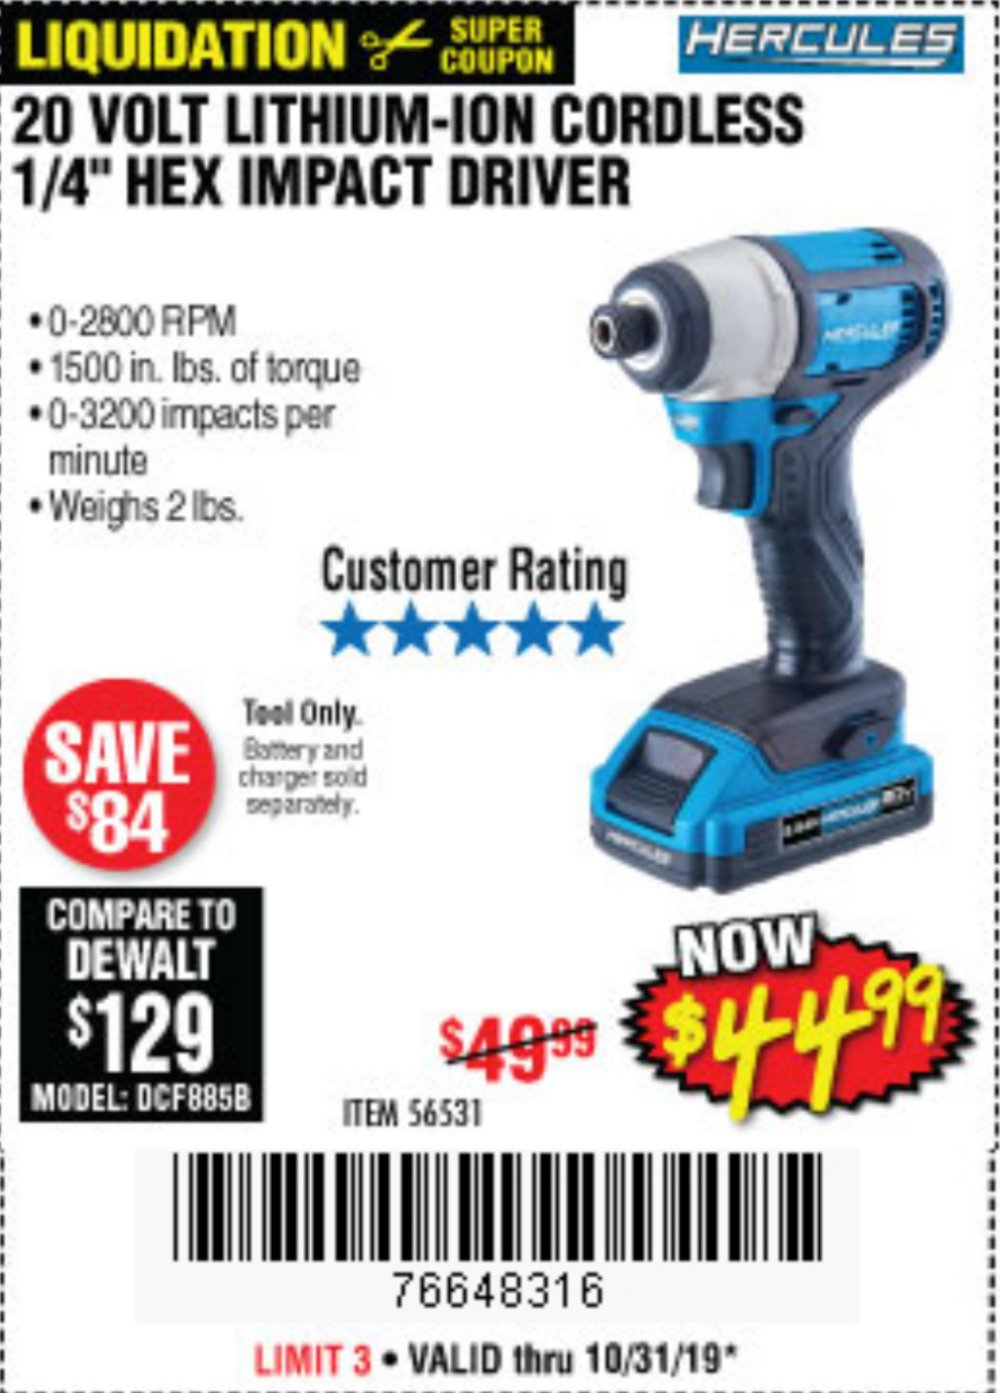 Harbor Freight Coupon, HF Coupons - Hercules 20 Volt Lithium-ion Cordless 1/4